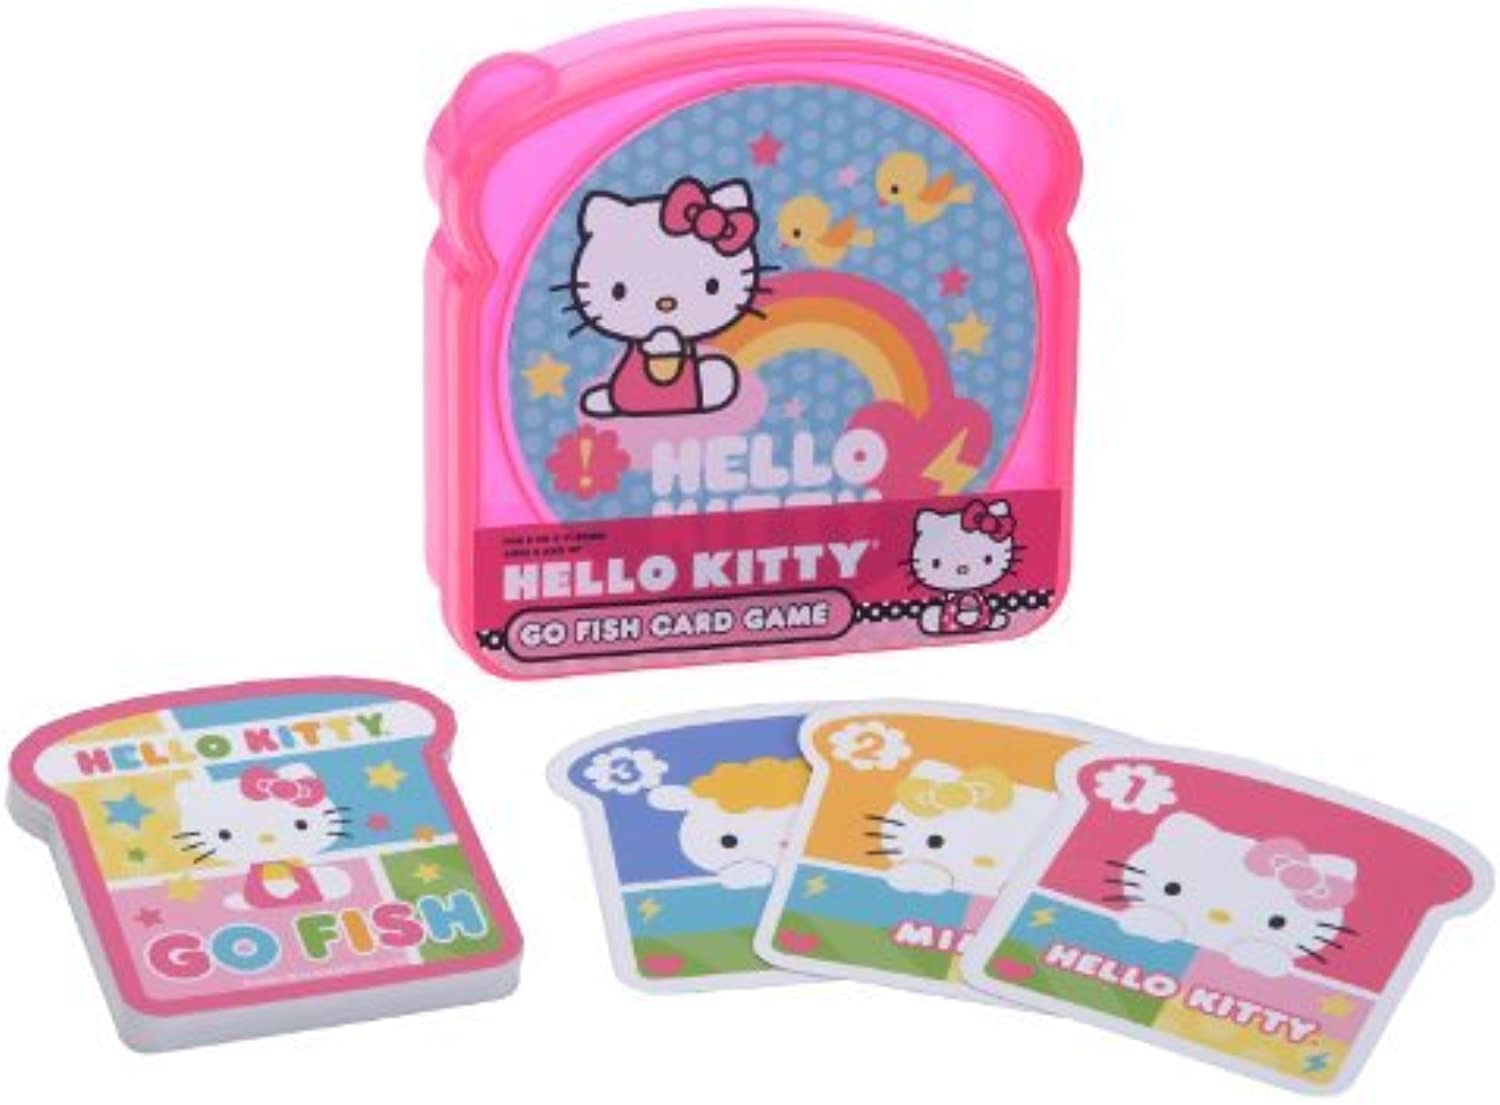 Hello Kitty Go Fish Card Game In Sandwich Container by Pressman Toy